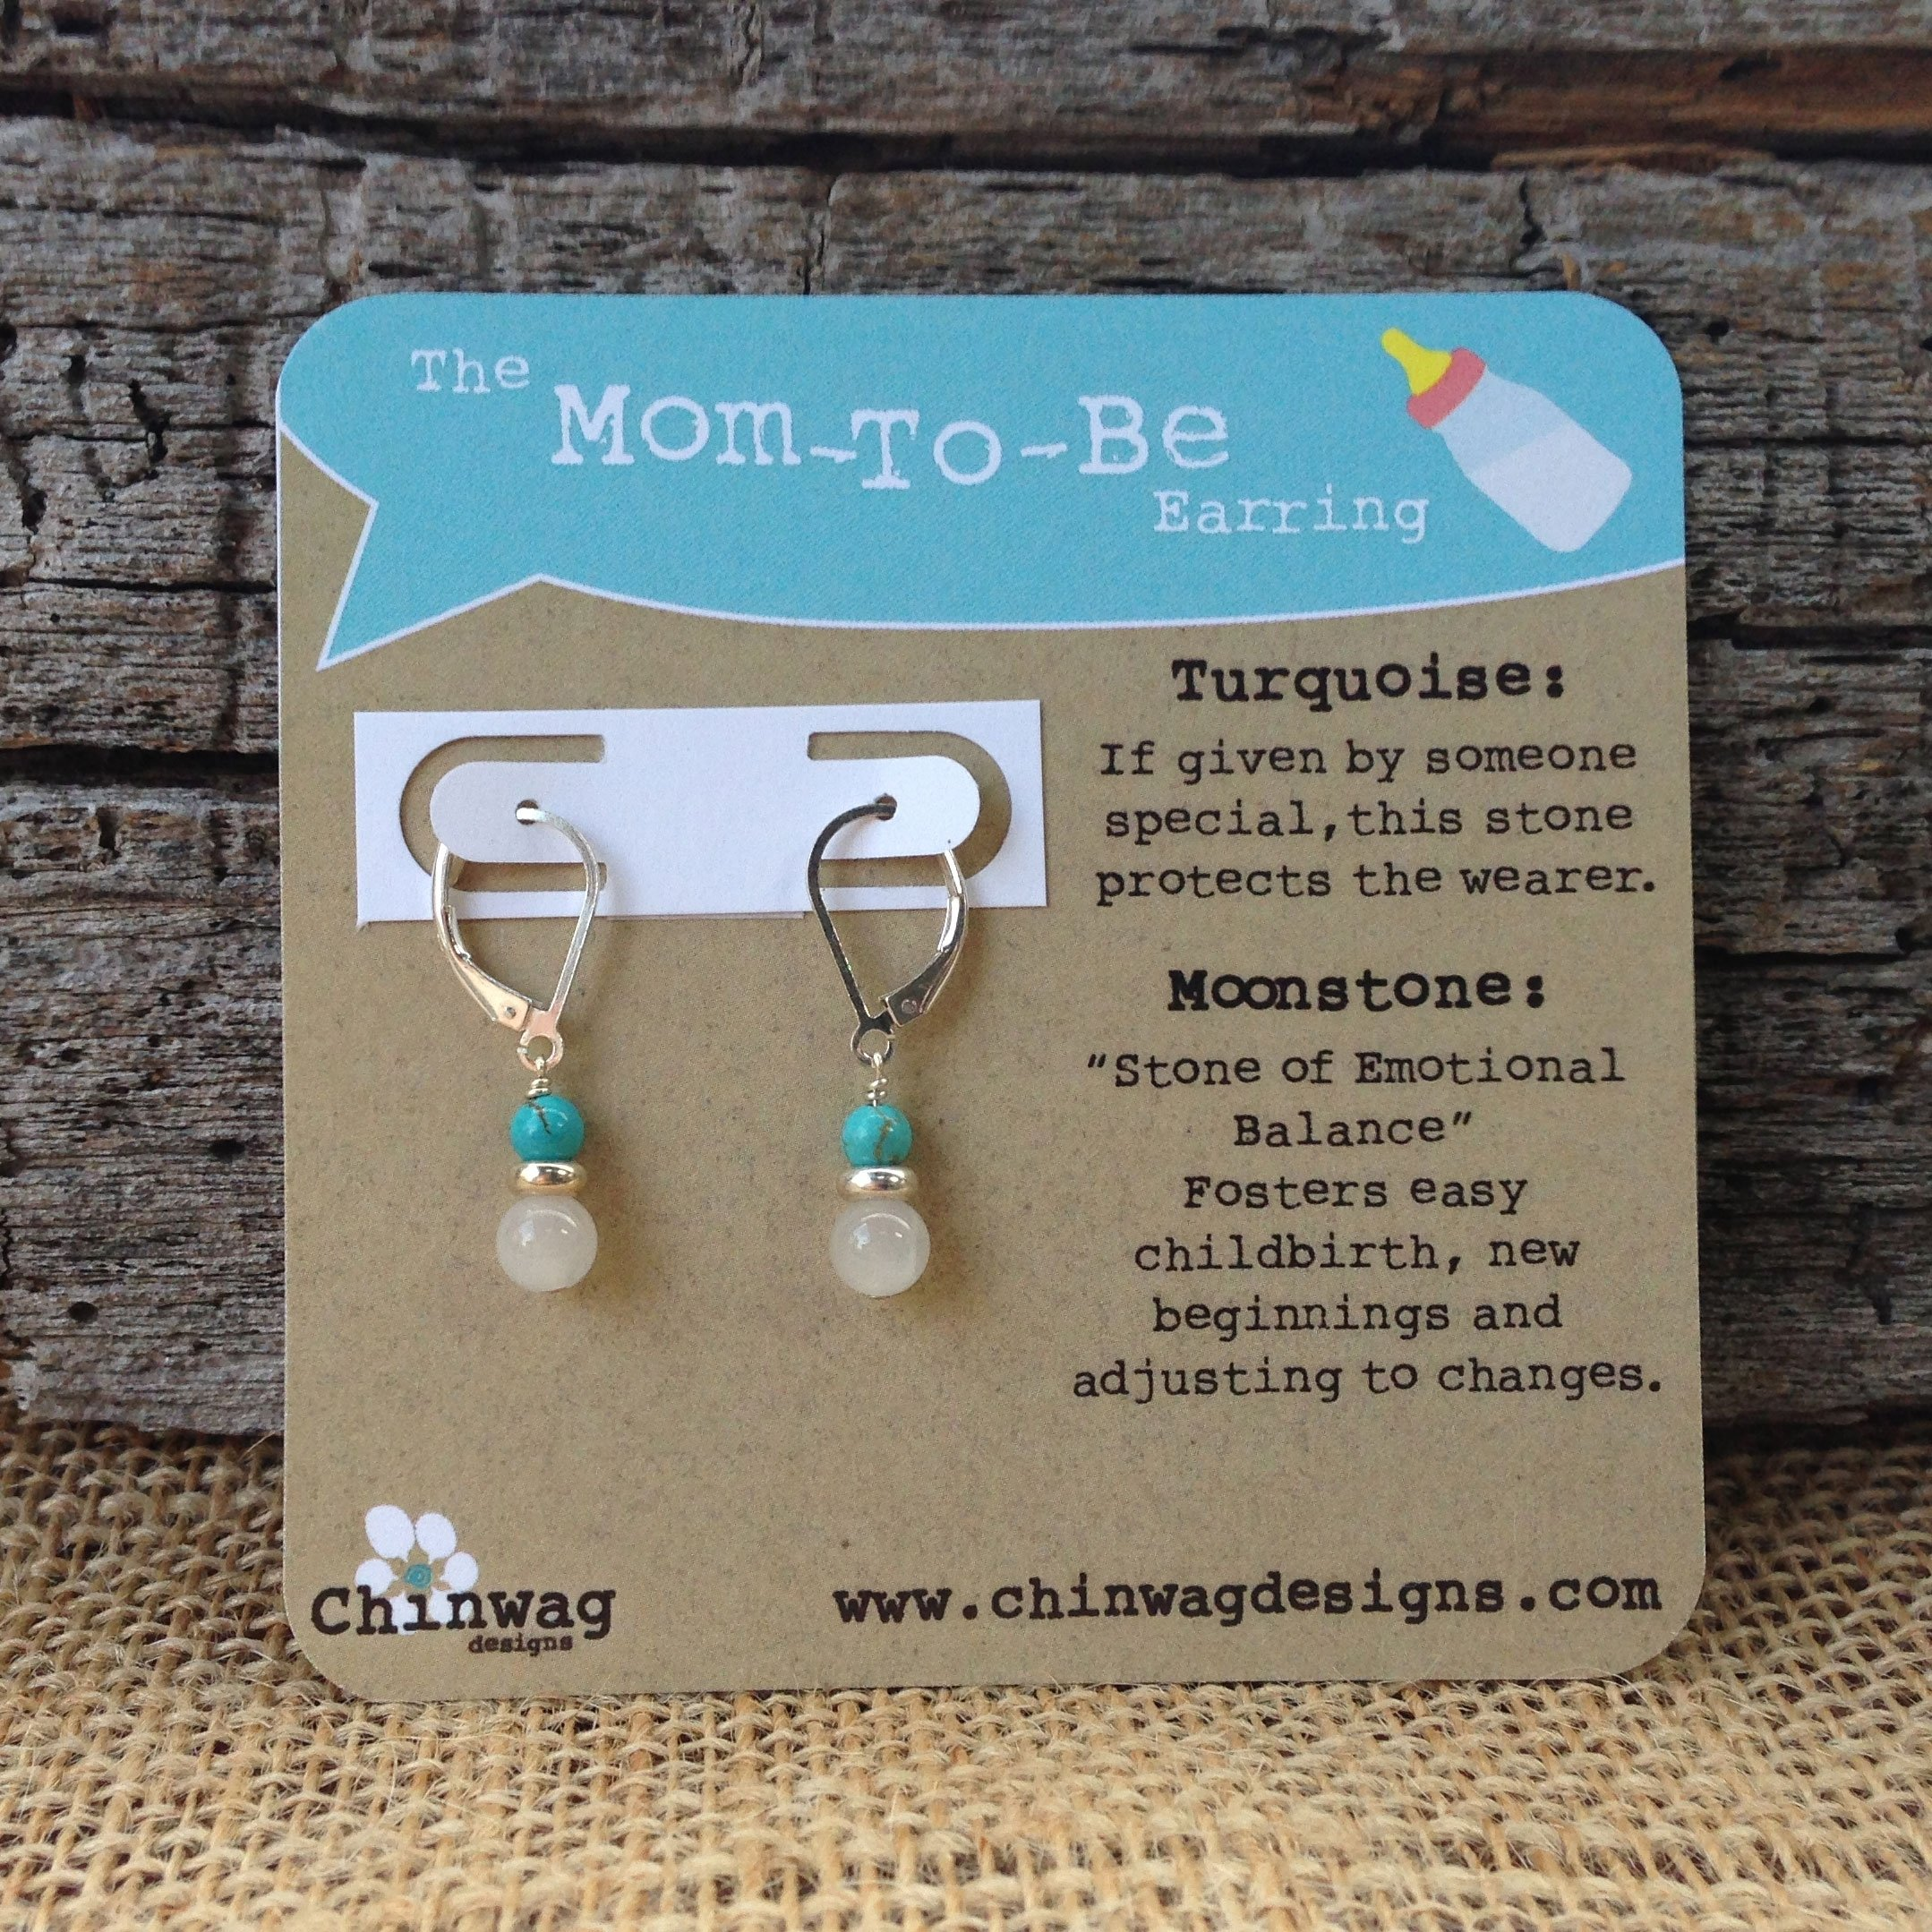 the mom to be earring | chinwag designs